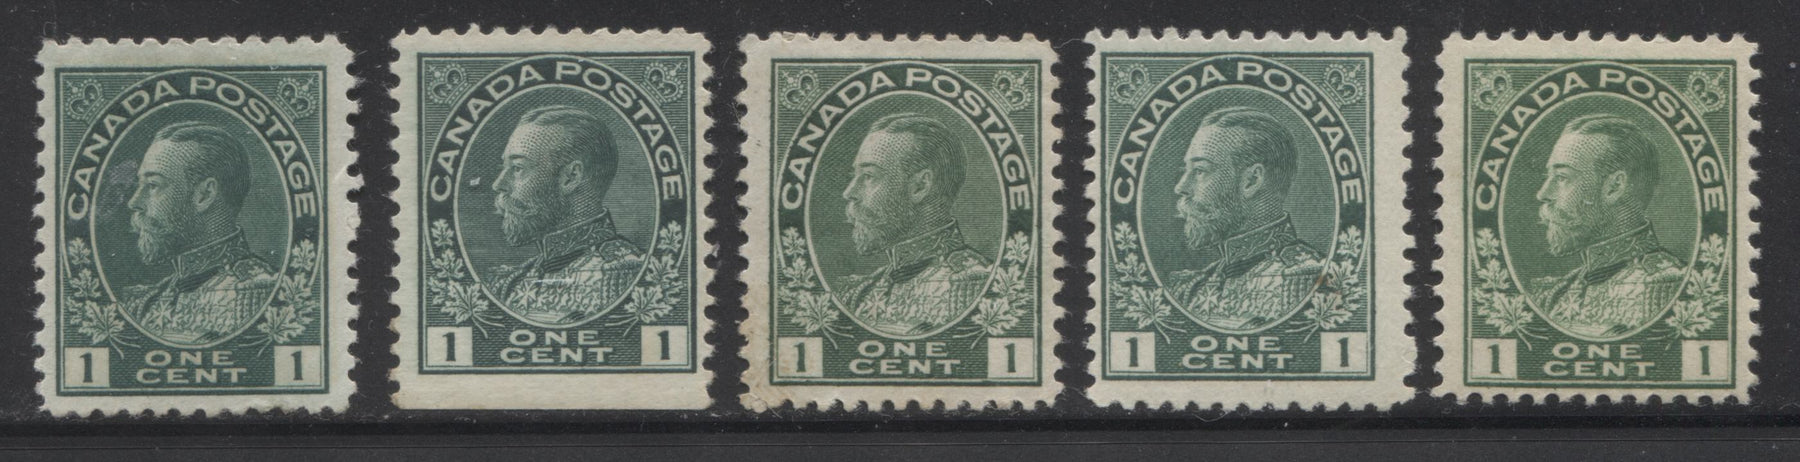 Canada #104/104aivs 1c Dark Green, Deep Yellow Green, Blue Green and Deep Blue Green, King George V 1911-1928 Admiral Issue Fine Mint OG Examples of the Sheet Stamps and the Scarce Squat Printing Booklet Single, Various Shades Brixton Chrome